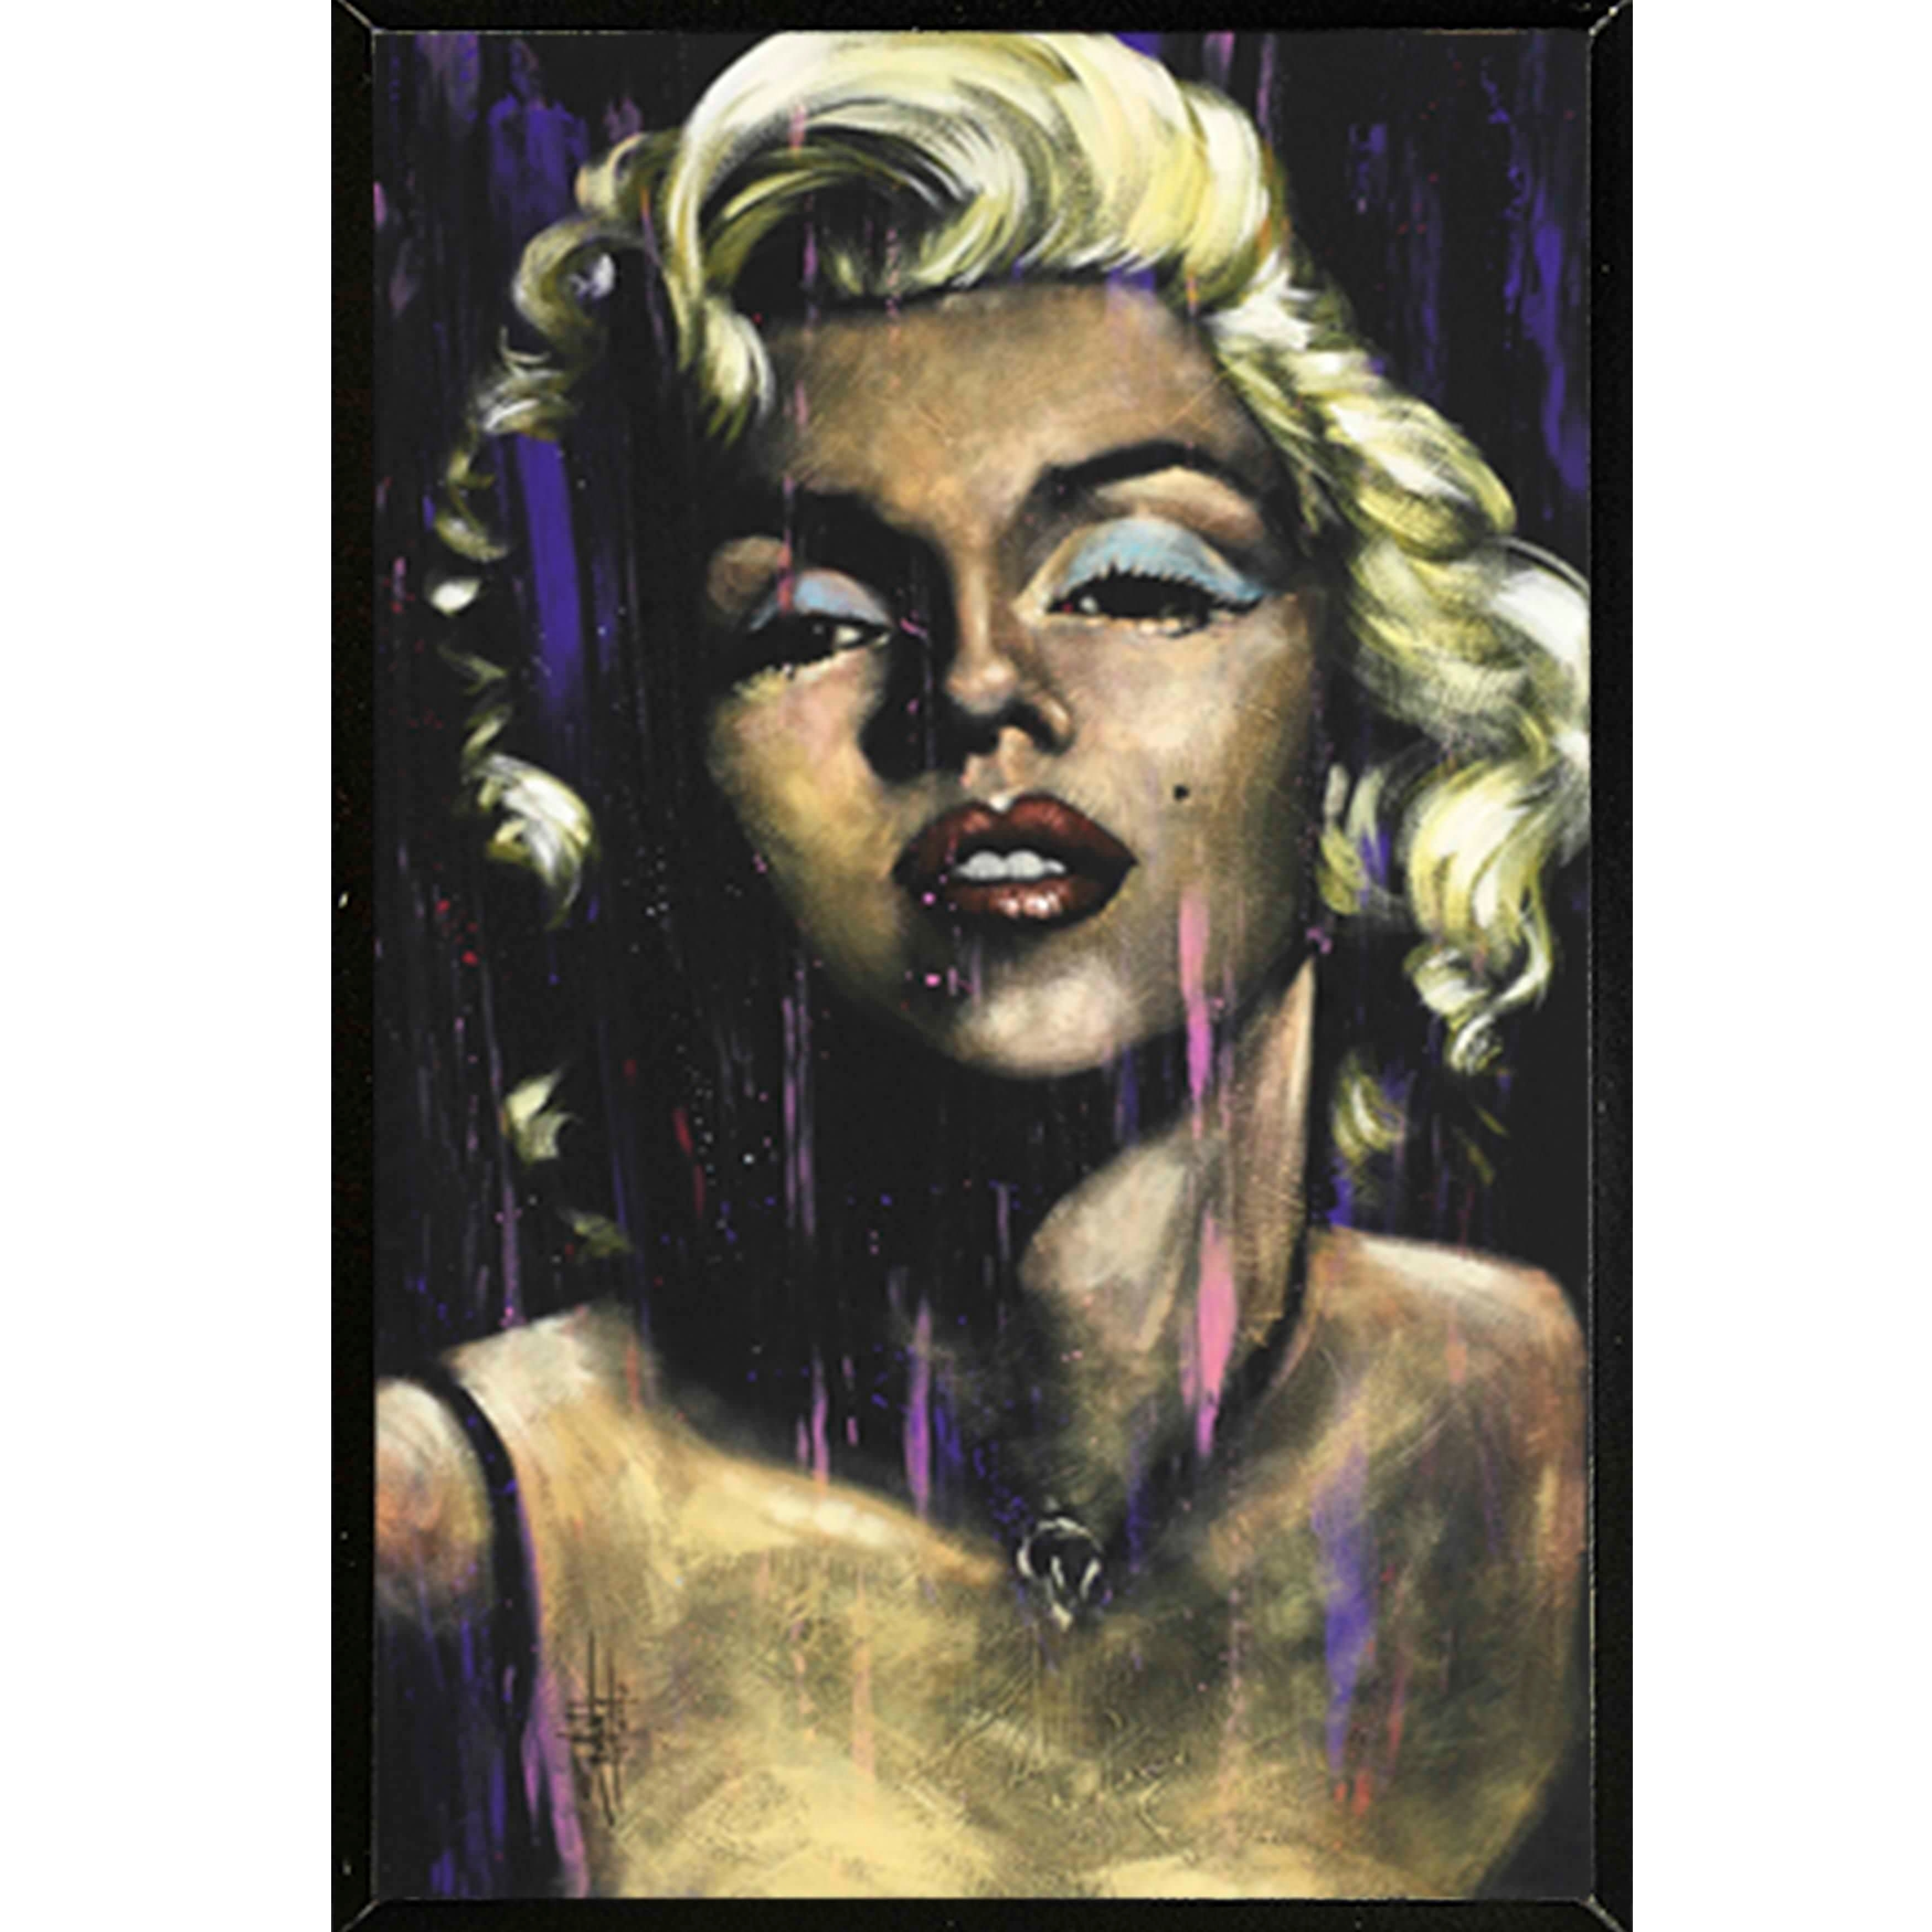 Marilyn Monroe Poster Candle In The Wind Marilyn Monroe Poster With Choice Of Frame 24x36